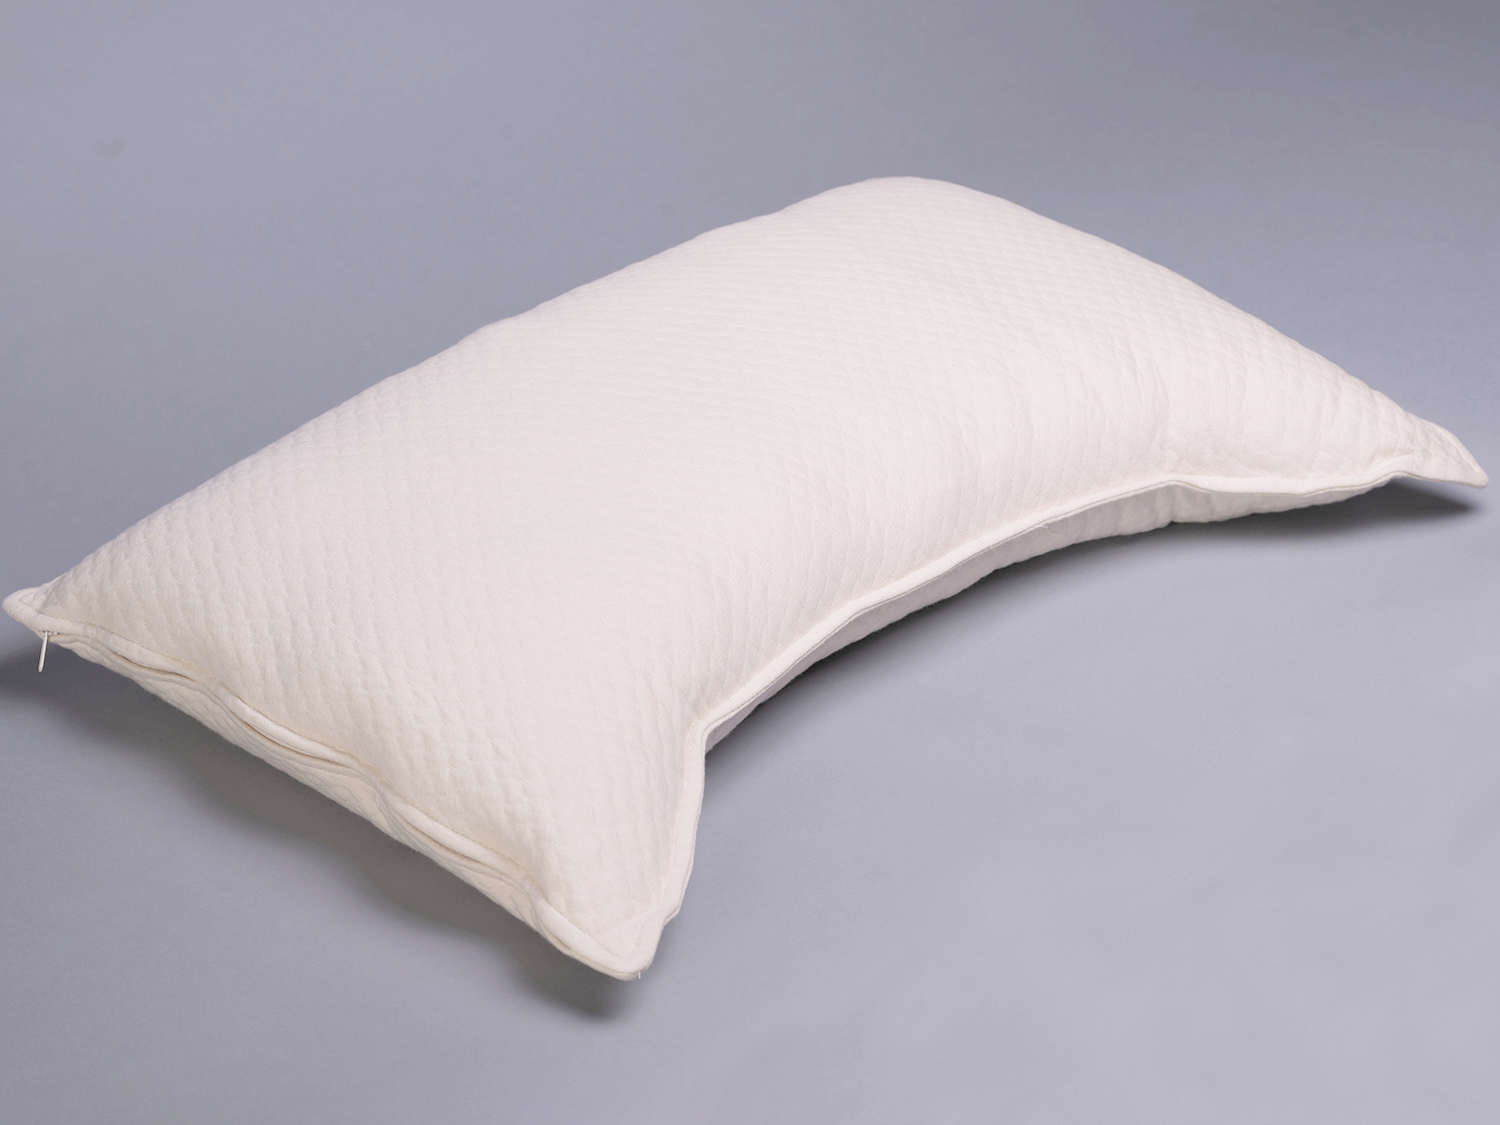 Complete Sleeper Pillow Mélange Profile Pillow Bedrooms And More Seattle